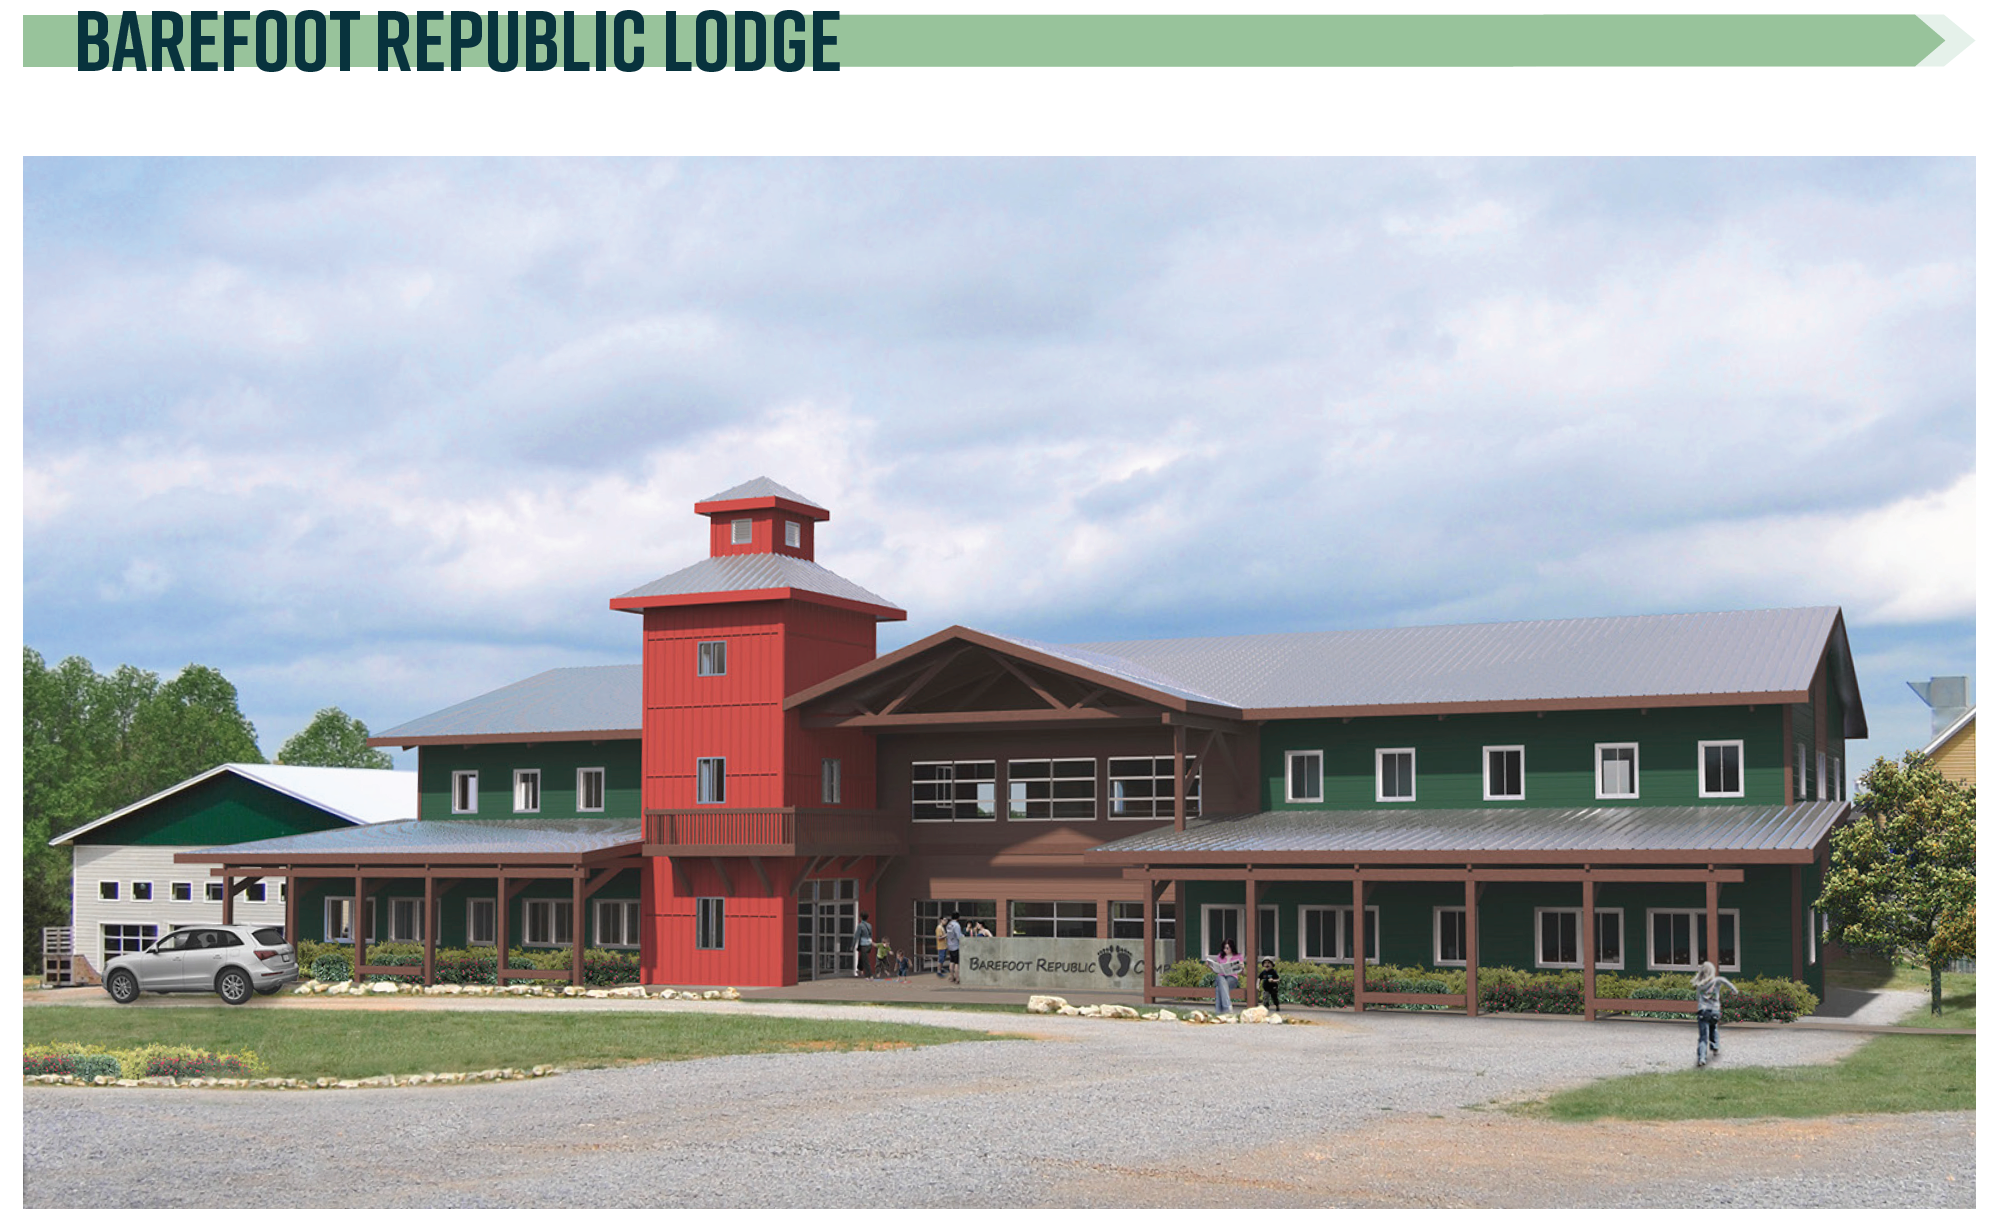 lodge-rendering.png